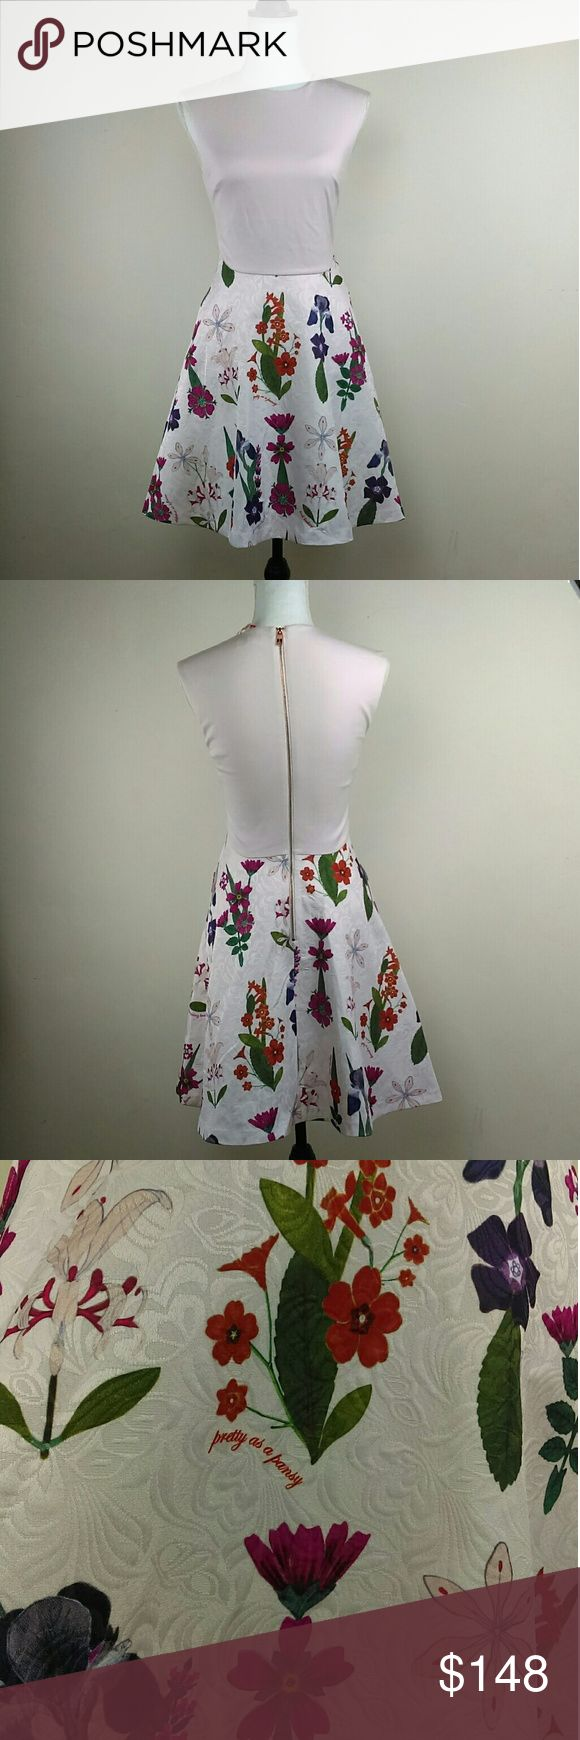 New NWOT Ted Baker Pretty as a Pansy Garden Dress Brand New! This dress is so pretty my photos do not do it justice. It has a fitted pale pink top and a floral skirt with two hip pockets. It zips up in the back. This is a brand New dress and tag was cut off for no returns but it still has partial.   Ted size 1 USA SIZE 4 Ted Baker Dresses